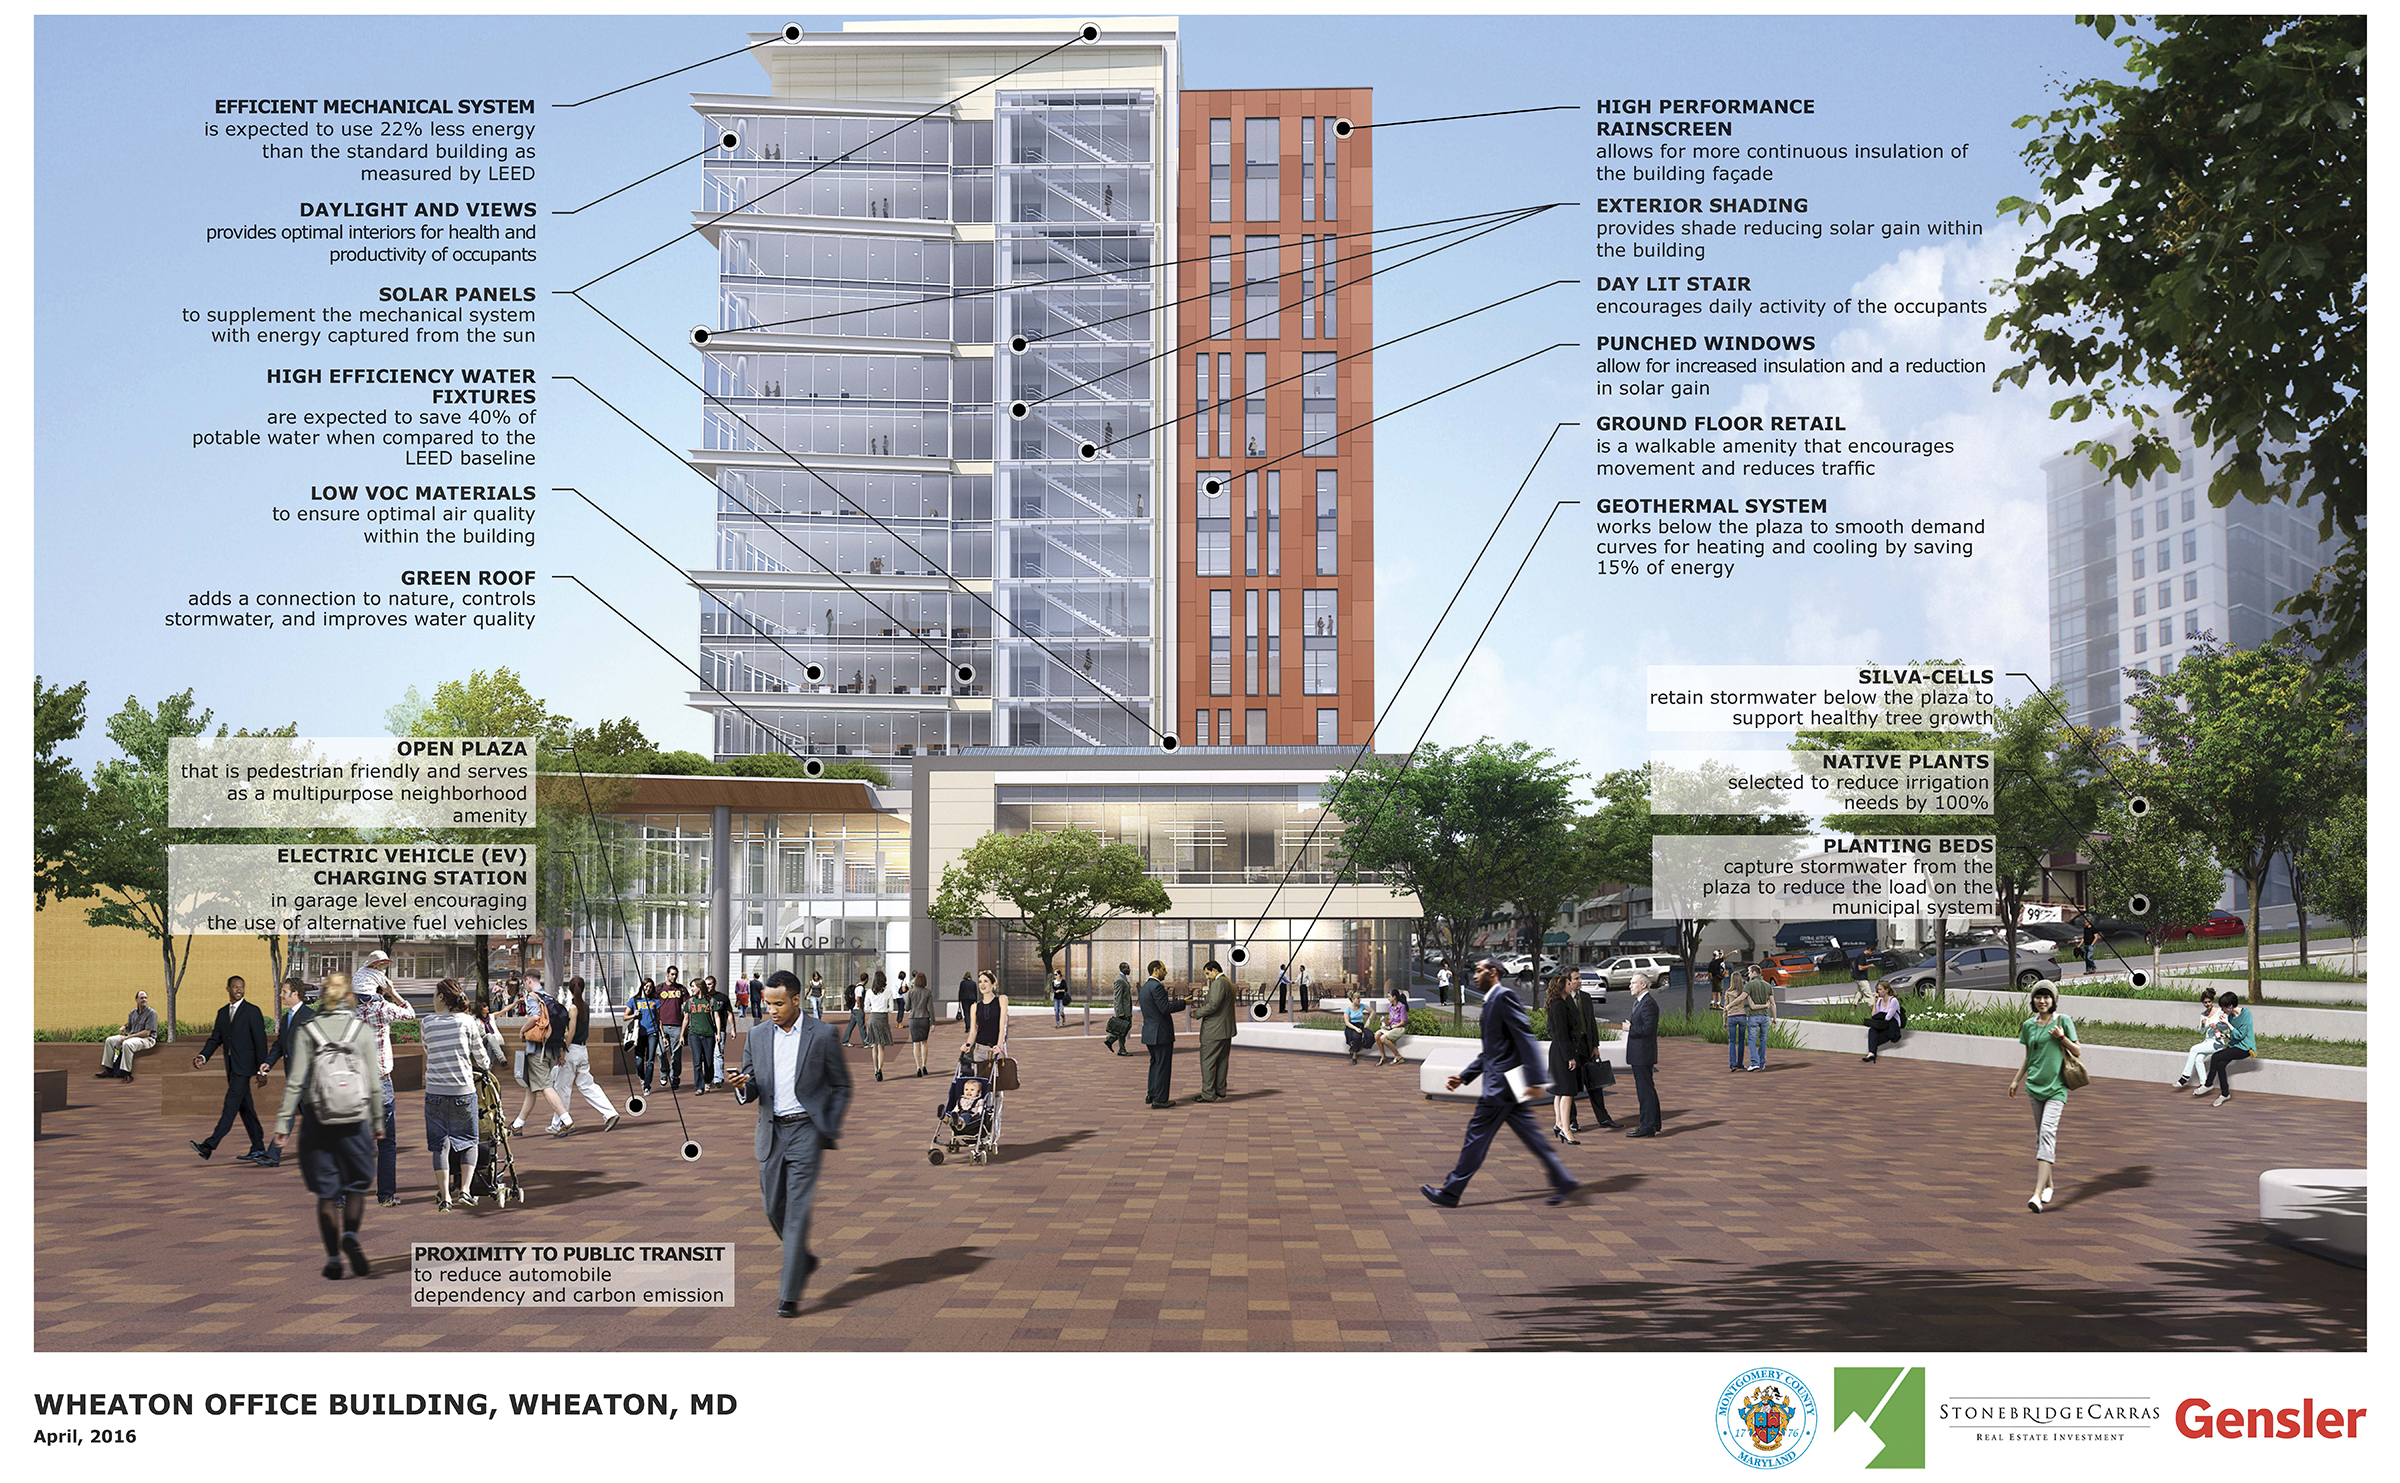 A computer drawing of the south elevation of the Headquarters building from the new Marian Fryer Town Plaza showing many people walking on the plaza and notes to either side of the elevation explaining the sustainable green features of the building and site. EFFICIENT MECHANICAL SYSTEM is expected to use 22% less energy than the standard building as measured by LEED DAYLIGHT AND VIEWS provides optimal interiors for health and productivity of occupants SOLAR PANELS to supplement the mechanical system with energy captured from the sun HIGH EFFICIENCY WATER FIXTURES are expected to save 40% of potable water when compared to the LEED baseline LOW voe MATERIALS to ensure optimal air quality within the building GREEN ROOF adds a connection to nature, controls stormwater, and improves water quality HIGH PERFORMANCE RAINSCREEN allows for more continuous insulation of the building facade EXTERIOR SHADING provides shade reducing solar gain within the building DAY LIT STAIR ·encourages daily activity of the occupants PUNCHED WINDOWS allow for increased insulation and a reduction in solar gain GROUND FLOOR RETAIL is a walkable amenity that encourages movement and reduces traffic GEOTHERMAL SYSTEM works below the plaza to smooth demand curves for heating and cooling by saving 15% of energy Open Plaza That is pedestrian friendly and serves as a multipurpose neighborhood amenity Electric Vehicle CHARGING STATION in garage level encouraging the use of alternative fuel vehicles SILVA-CELLS retain stormwater below the plaza to support healthy tree growth. · NATIVE PLANTS selected to reduce irrigation needs by 100% PLANTING BEDS capture stormwater from the plaza to reduce the load on the municipal system PROXIMITY TO PUBLIC TRANSIT to reduce automobile dependency and carbon emission